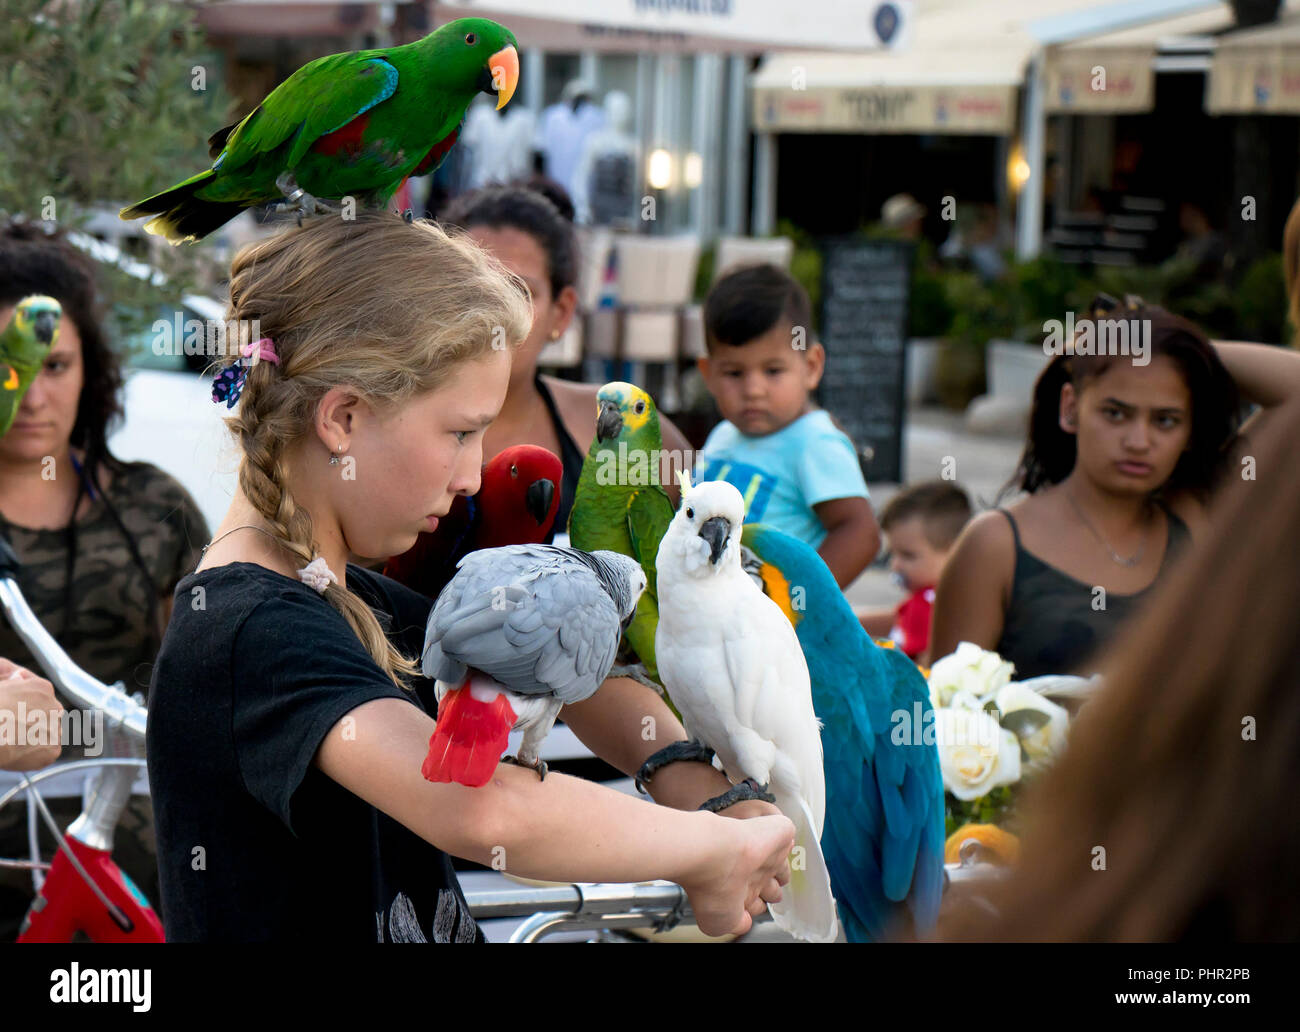 Vodice, Croatia - August 2, 2018: Young tourist teenage girl with parrots on head and shoulders posing for photo and people around her watching - Stock Image